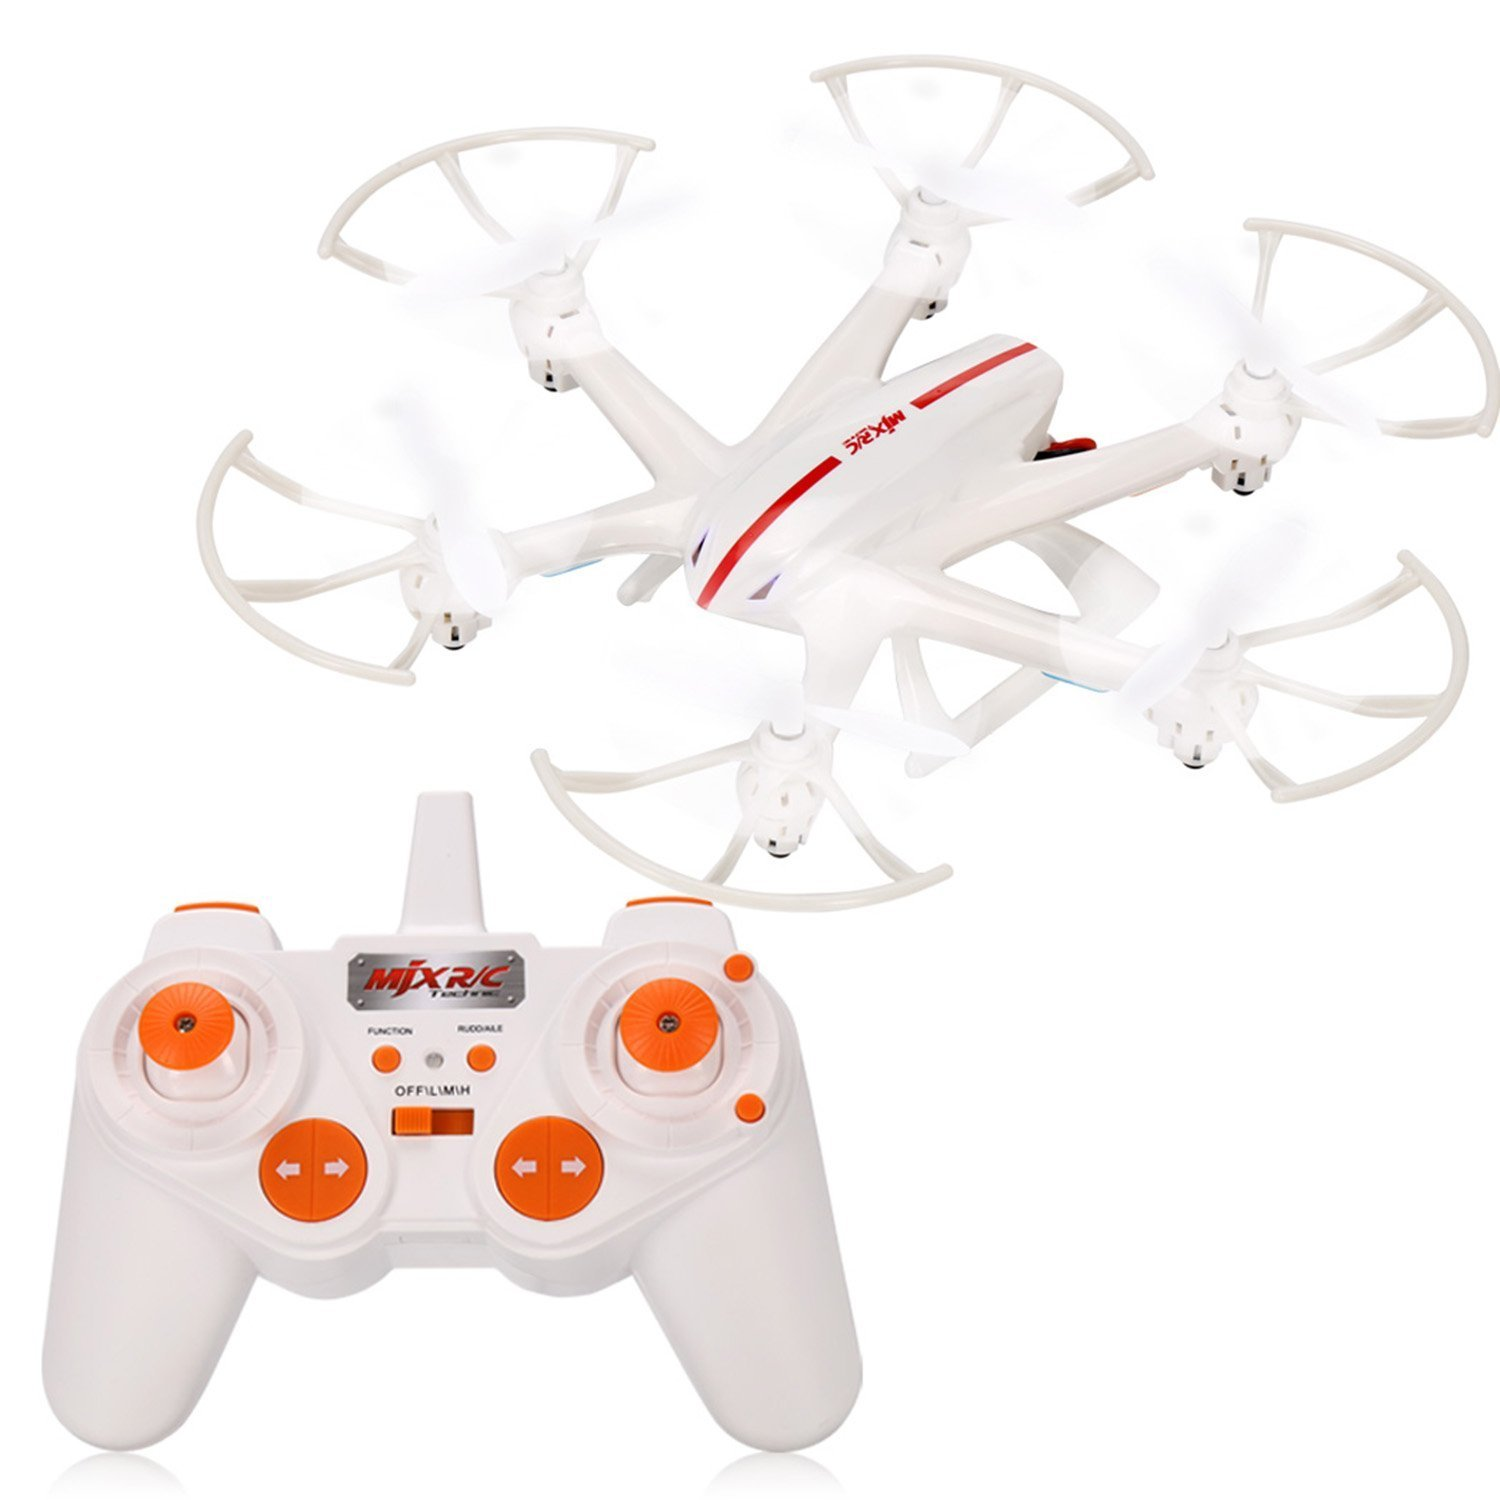 Voomall MJX X800 Hexacopter RC Quadcopter Drone 2.4GHz 6-Axis Gyro 3D Roll Weiß